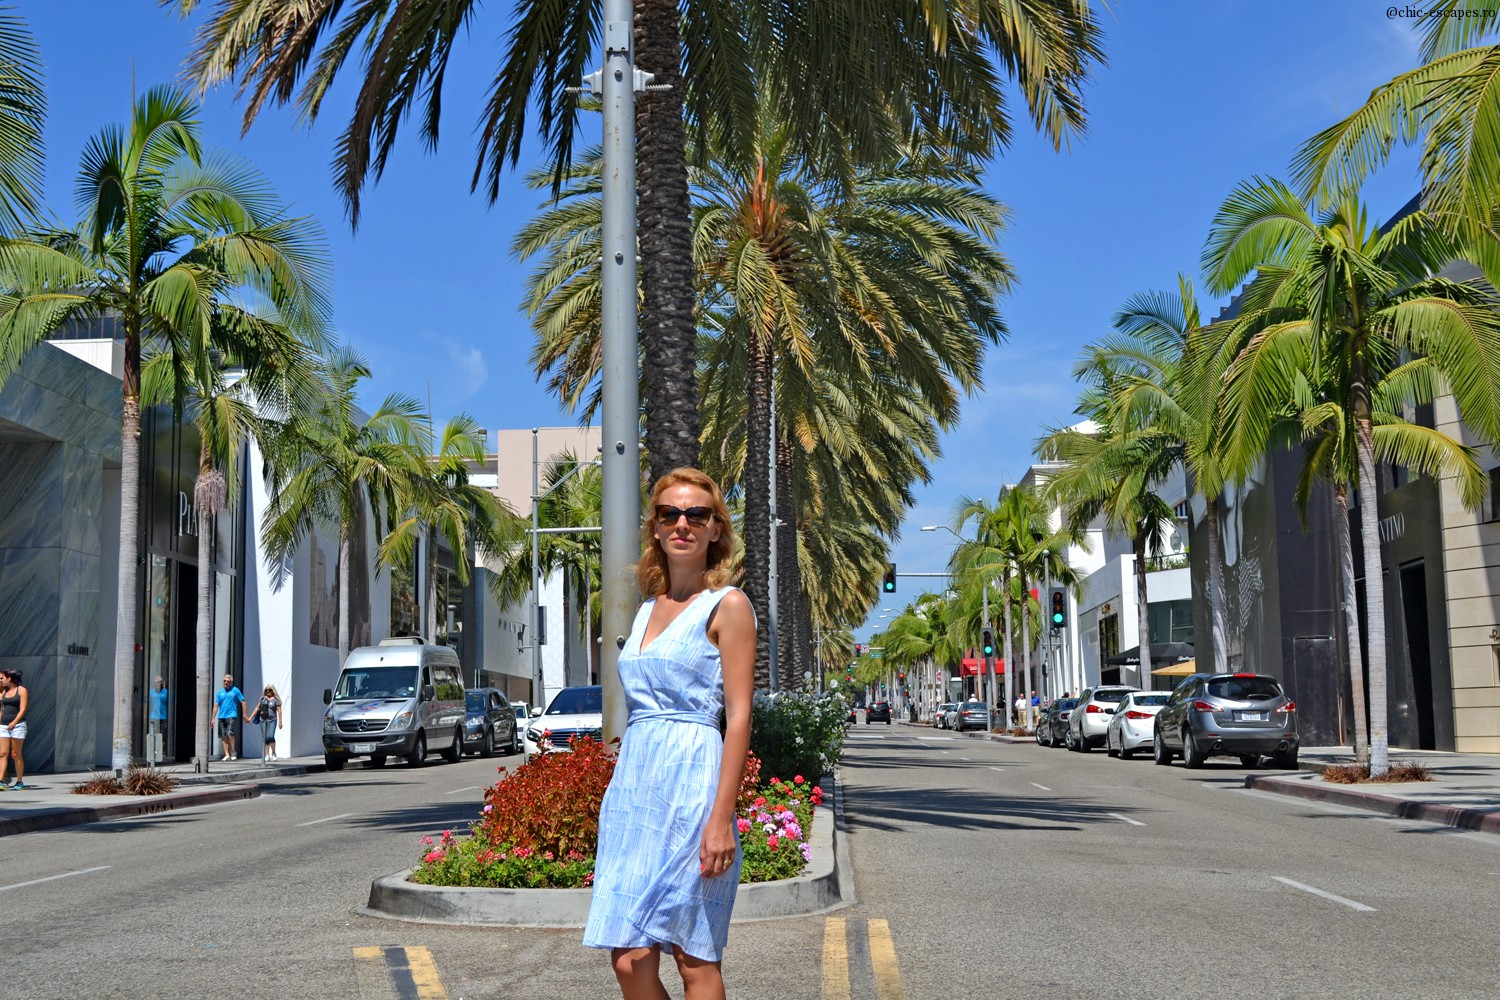 Rodeo Drive